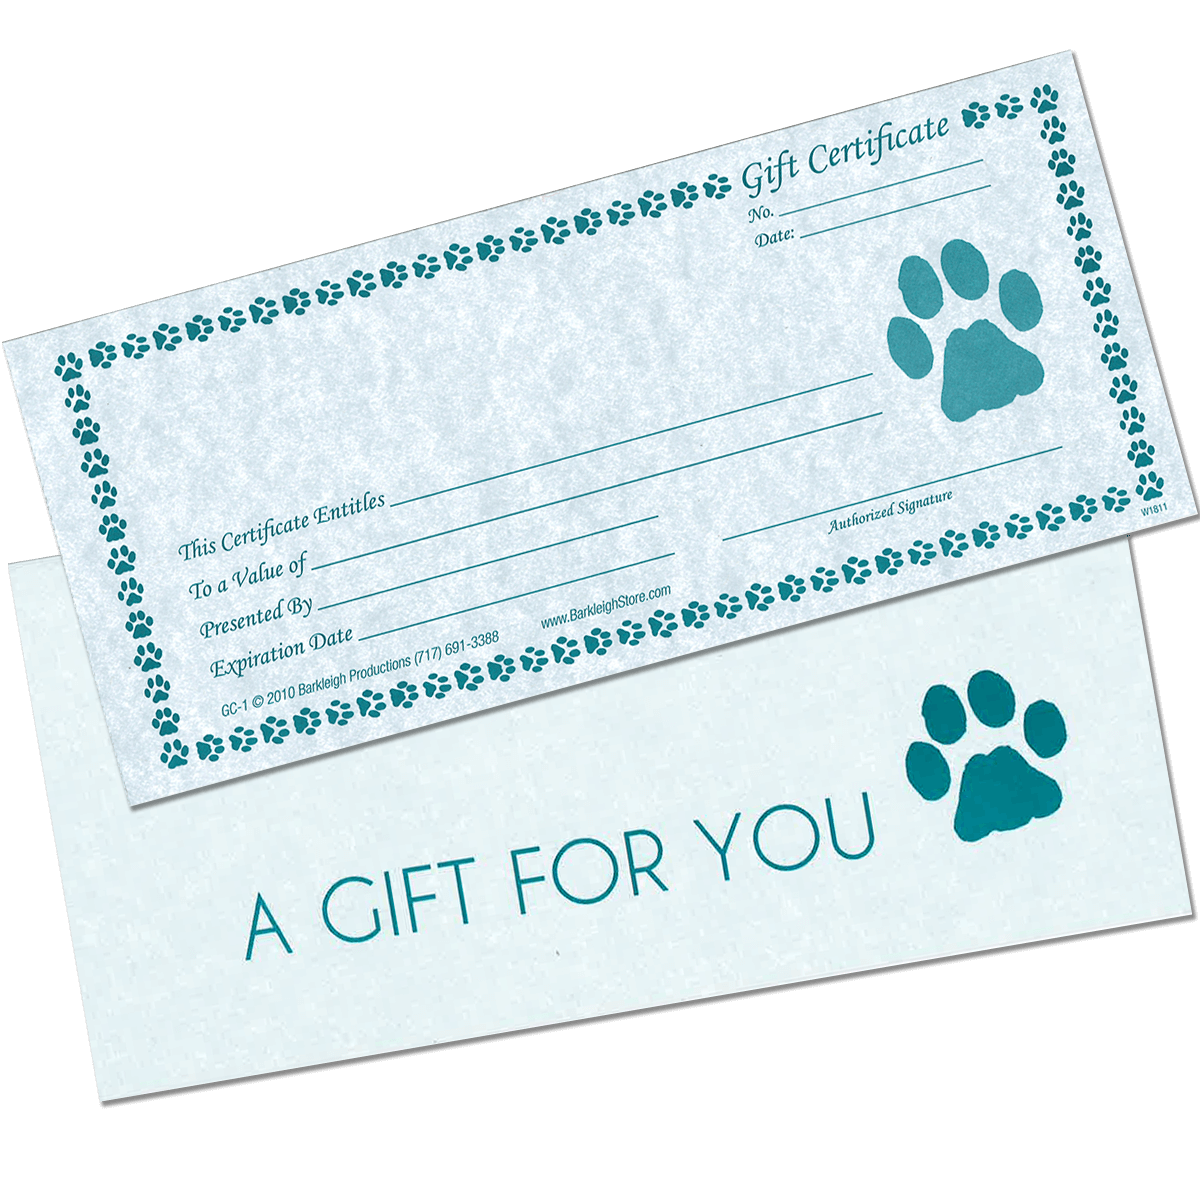 gift pet envelopes certificates release fuzzy cert certificate forms pack sign lope